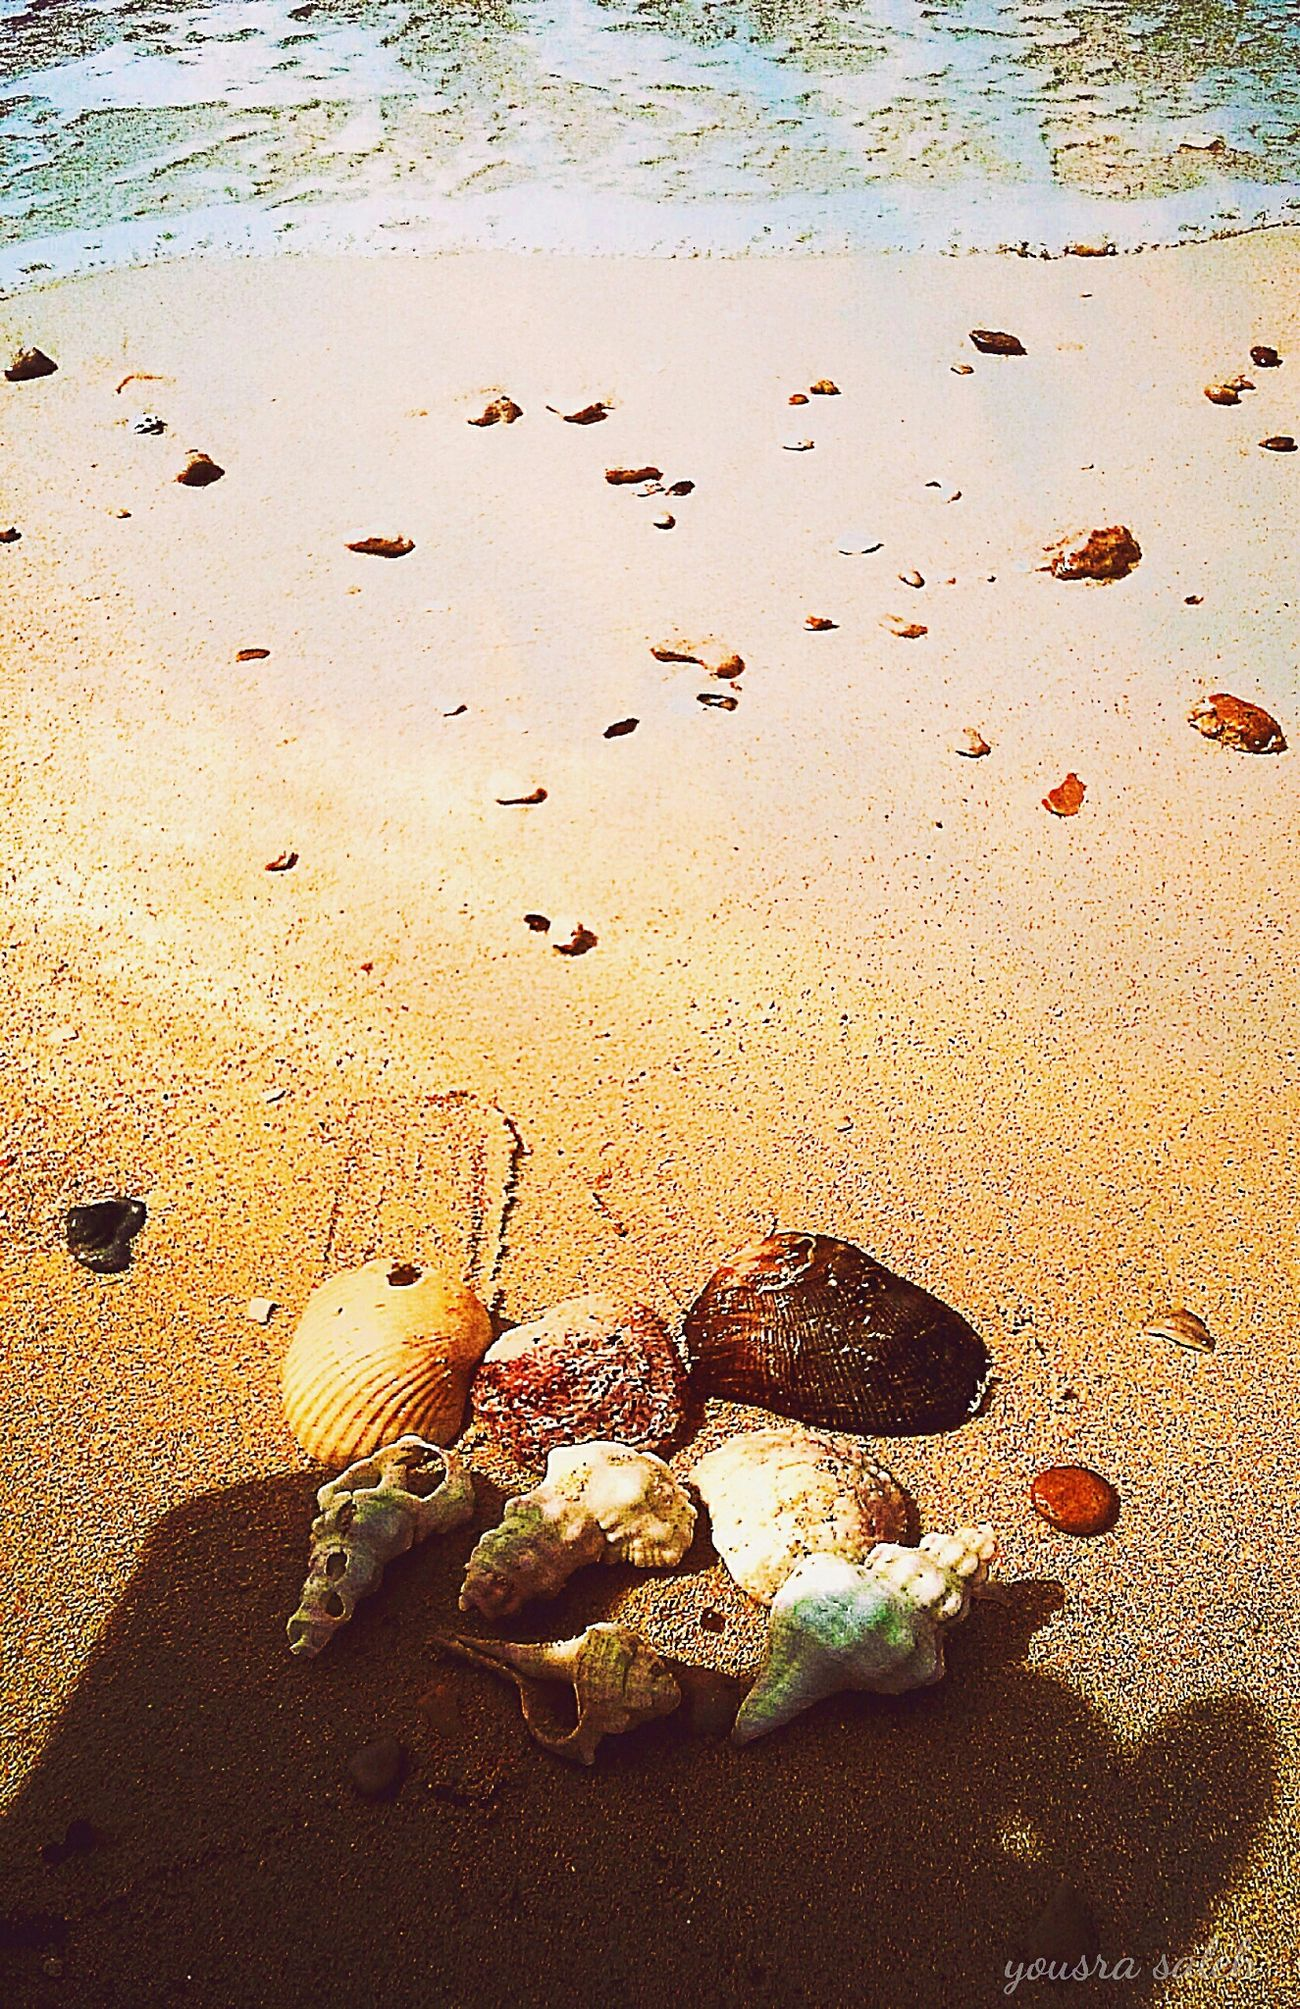 Seashells Stones And Shells Stones Stones And Pebbles Seashell Fossils Golden Sand Sand Seashell Beach Summer Seashell Collection Beach Stones & Water Seashells Picking Nature Colorful Nature Nature Photography Nature Beauty Nature_collection Naturelovers Beauty In Nature Relaxing Relaxing View Sunny Day Summer Memories Ras Sudr Egypt Love To Take Photos ❤